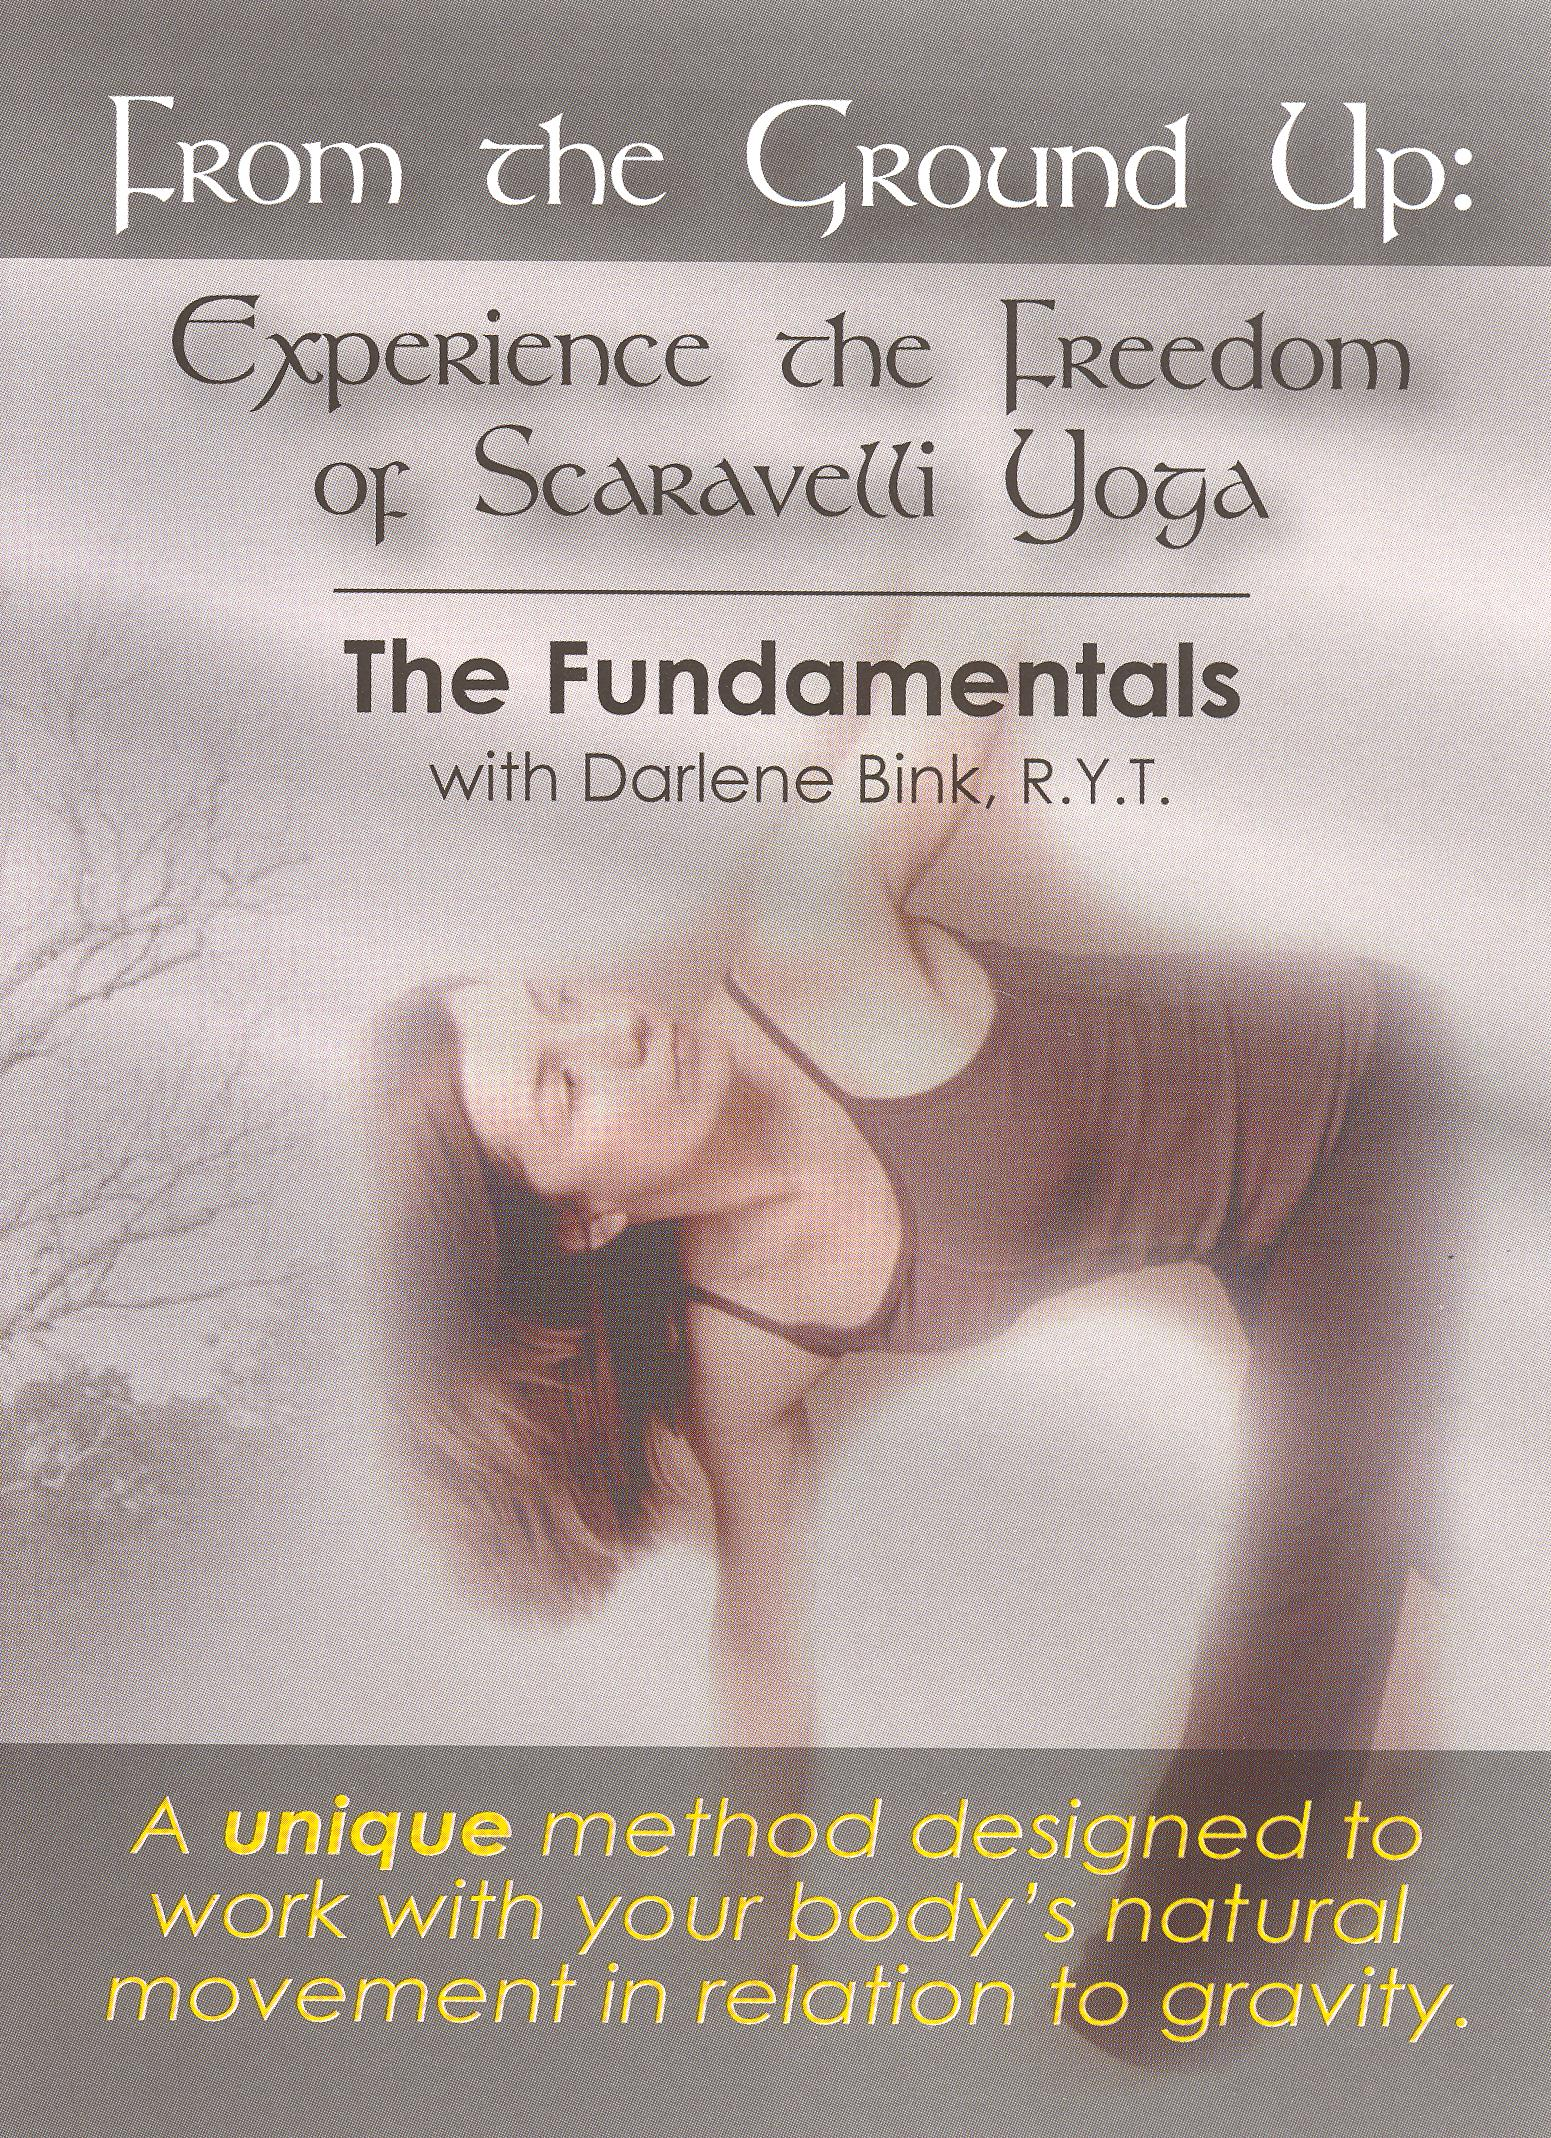 From the Ground Up: Experience the Freedom of Scaravelli Yoga, The Fundamentals